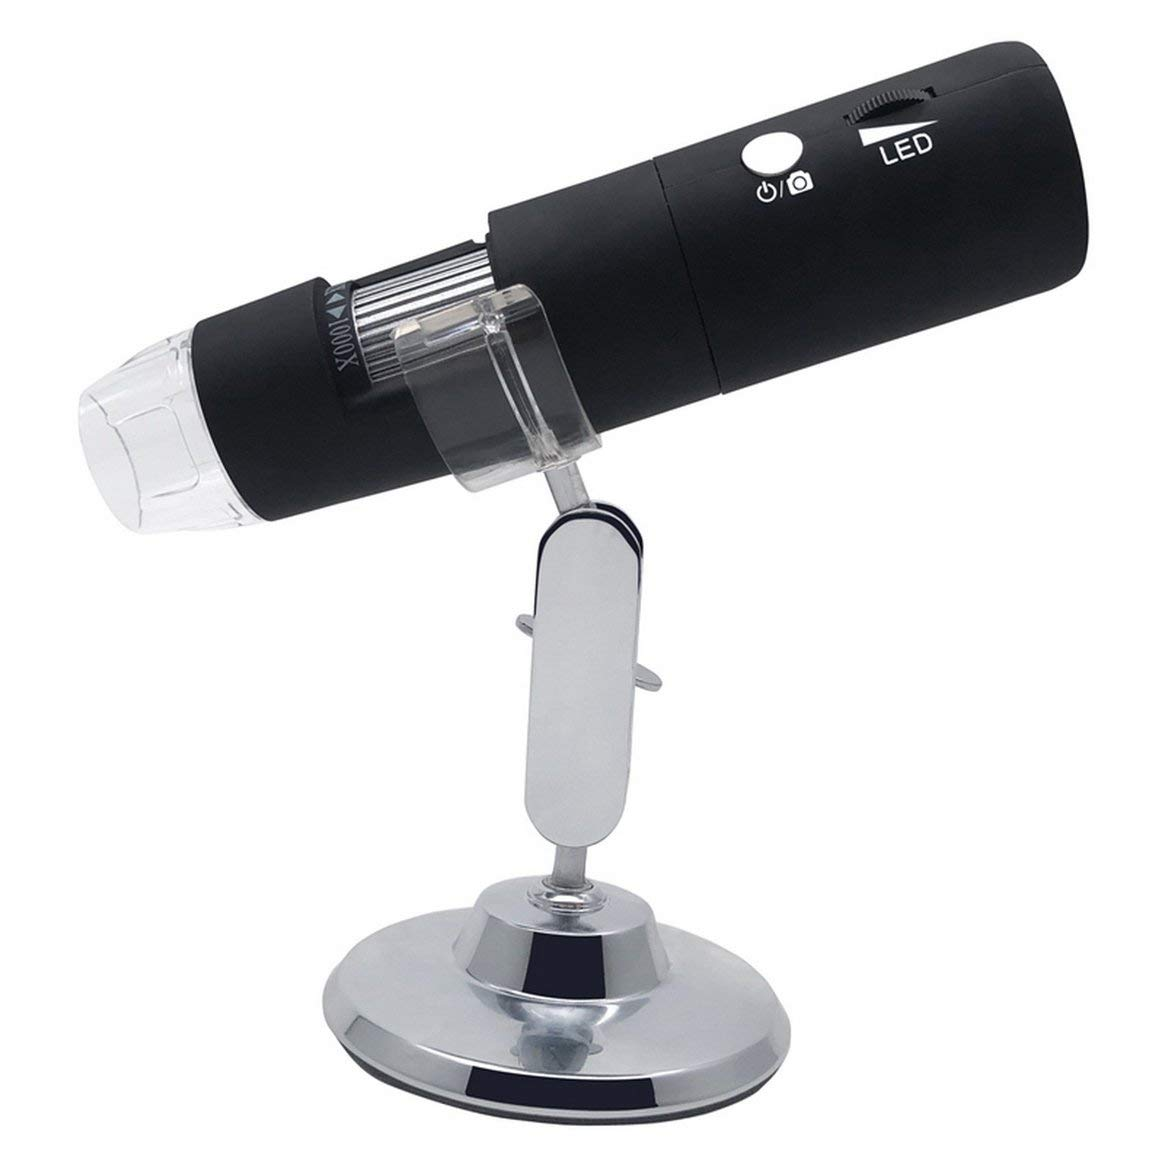 Electron Microscope with LED Lights Portable USB Digital Microscope 1000X Desk Loupe Long Distance Zoom